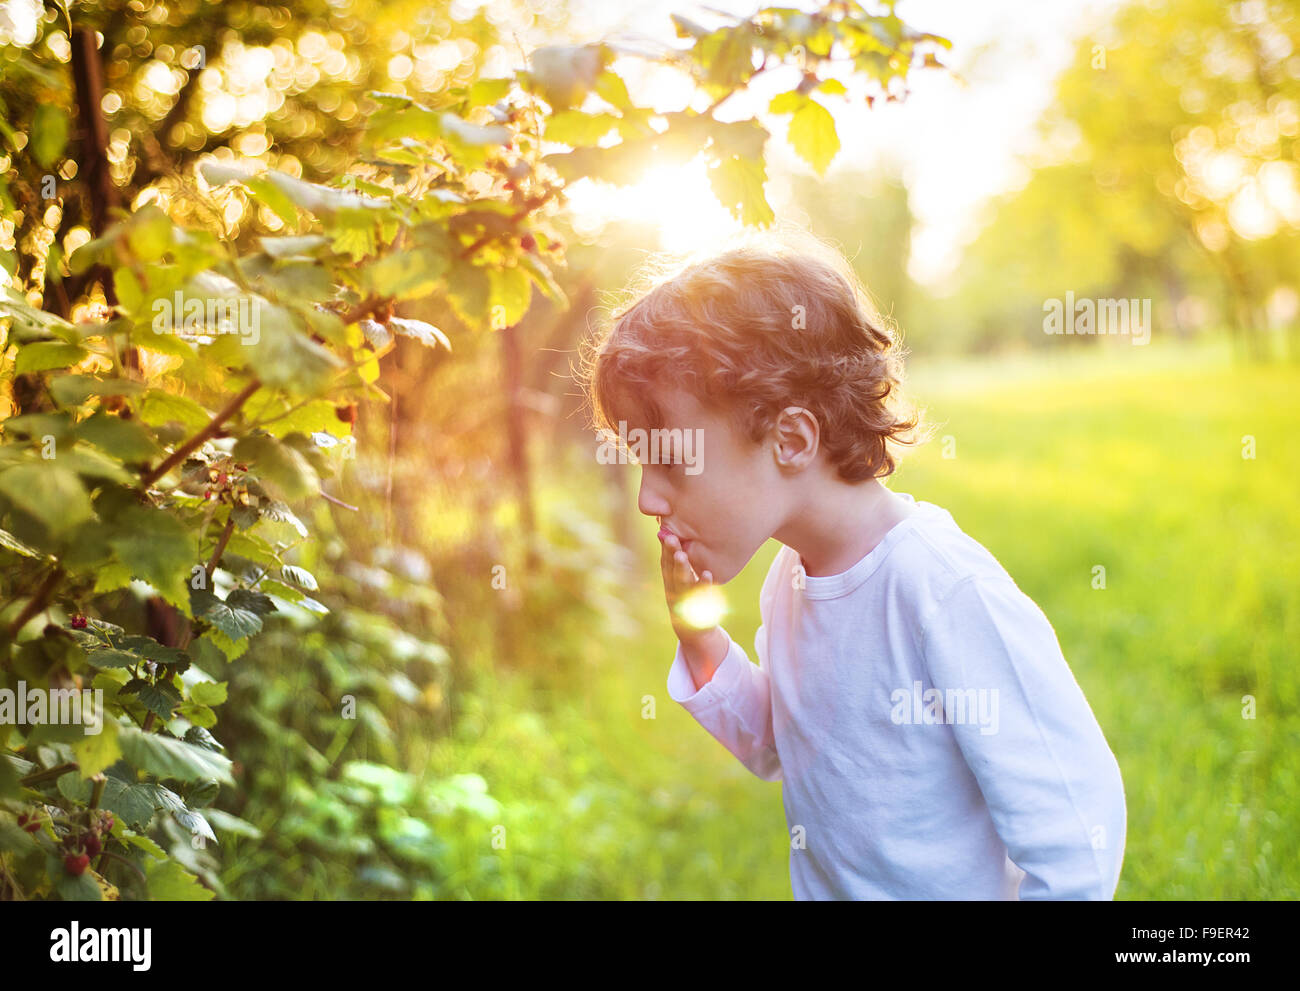 Cute little boy picking berries outside in a sunny garden - Stock Image